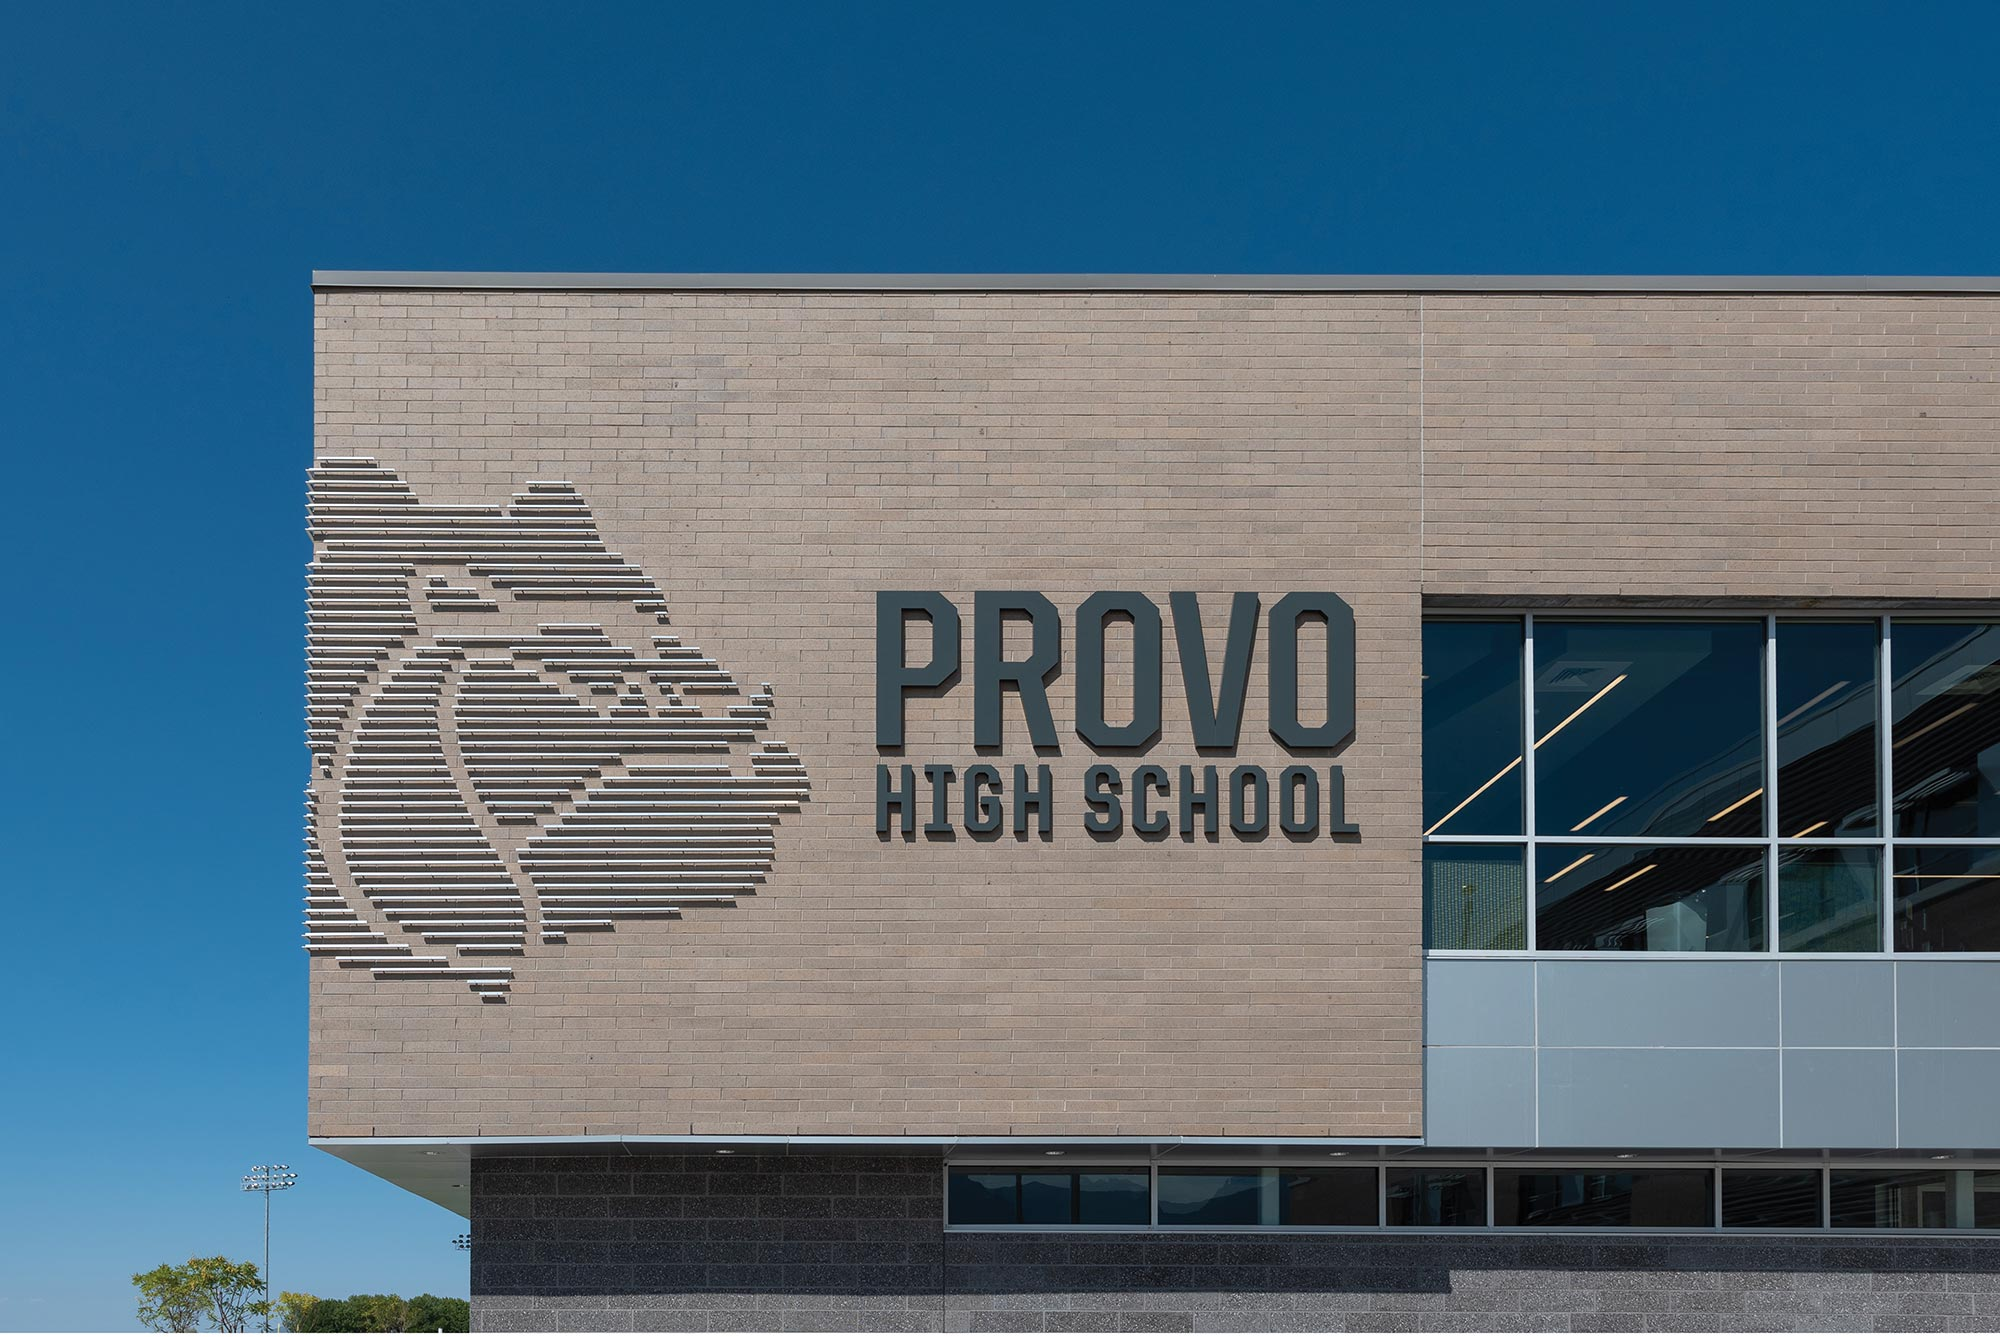 Provo-High-School-Exterior-Bulldog-Face-Sign